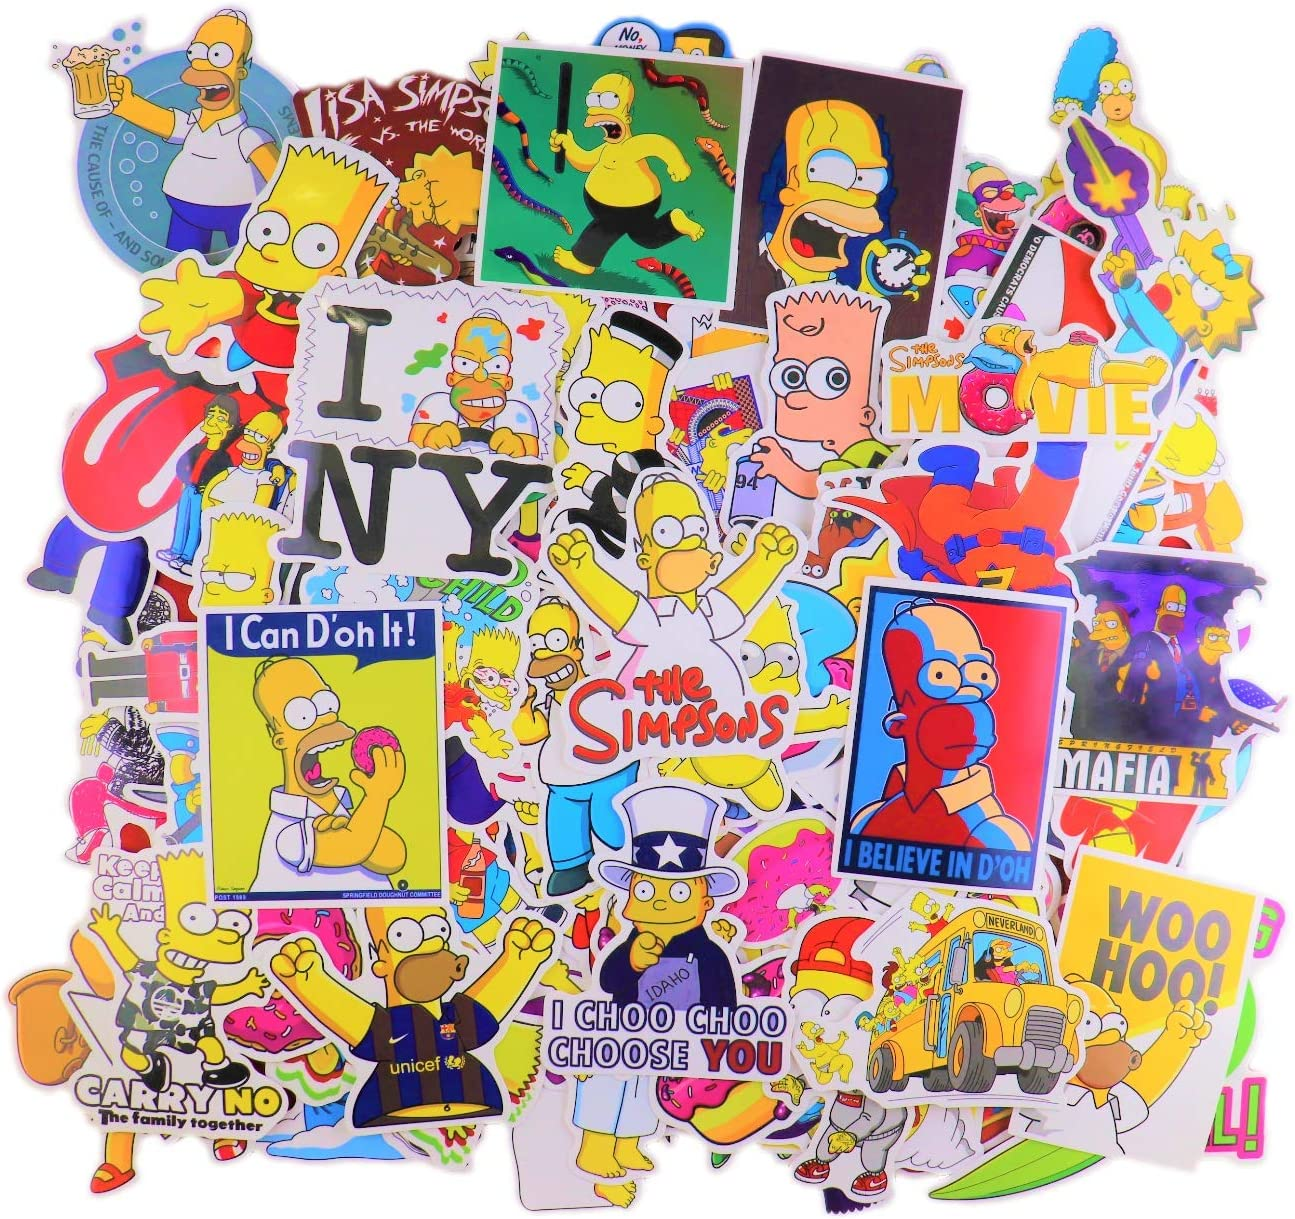 Amazon Com Laptop Sticker Pack 100pcs The Simpsons Merchandise Waterproof Vinyl Stickers For Water Bottles Laptop Kids Cars Motorcycle Bicycle Skateboard Luggage Bumper Stickers Hippie Decals Bomb Arts Crafts Sewing